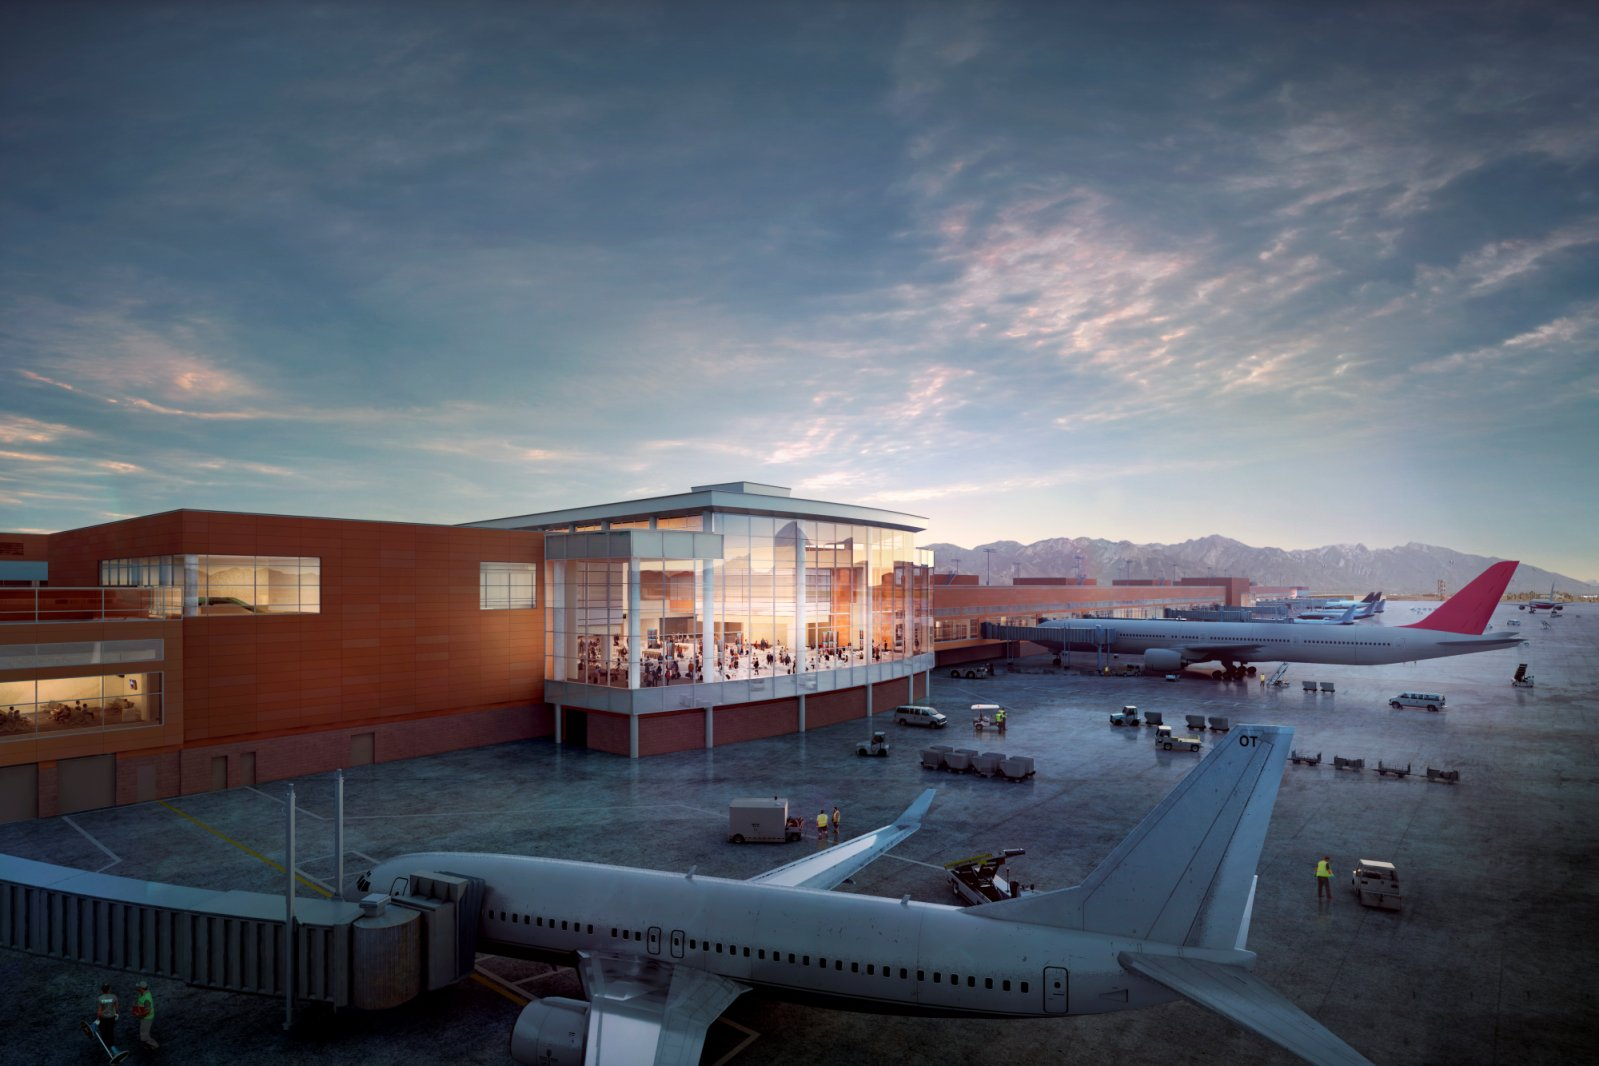 Salt-Lake-City-International-Airport-Terminal-Redevelopment-by-HOK-03